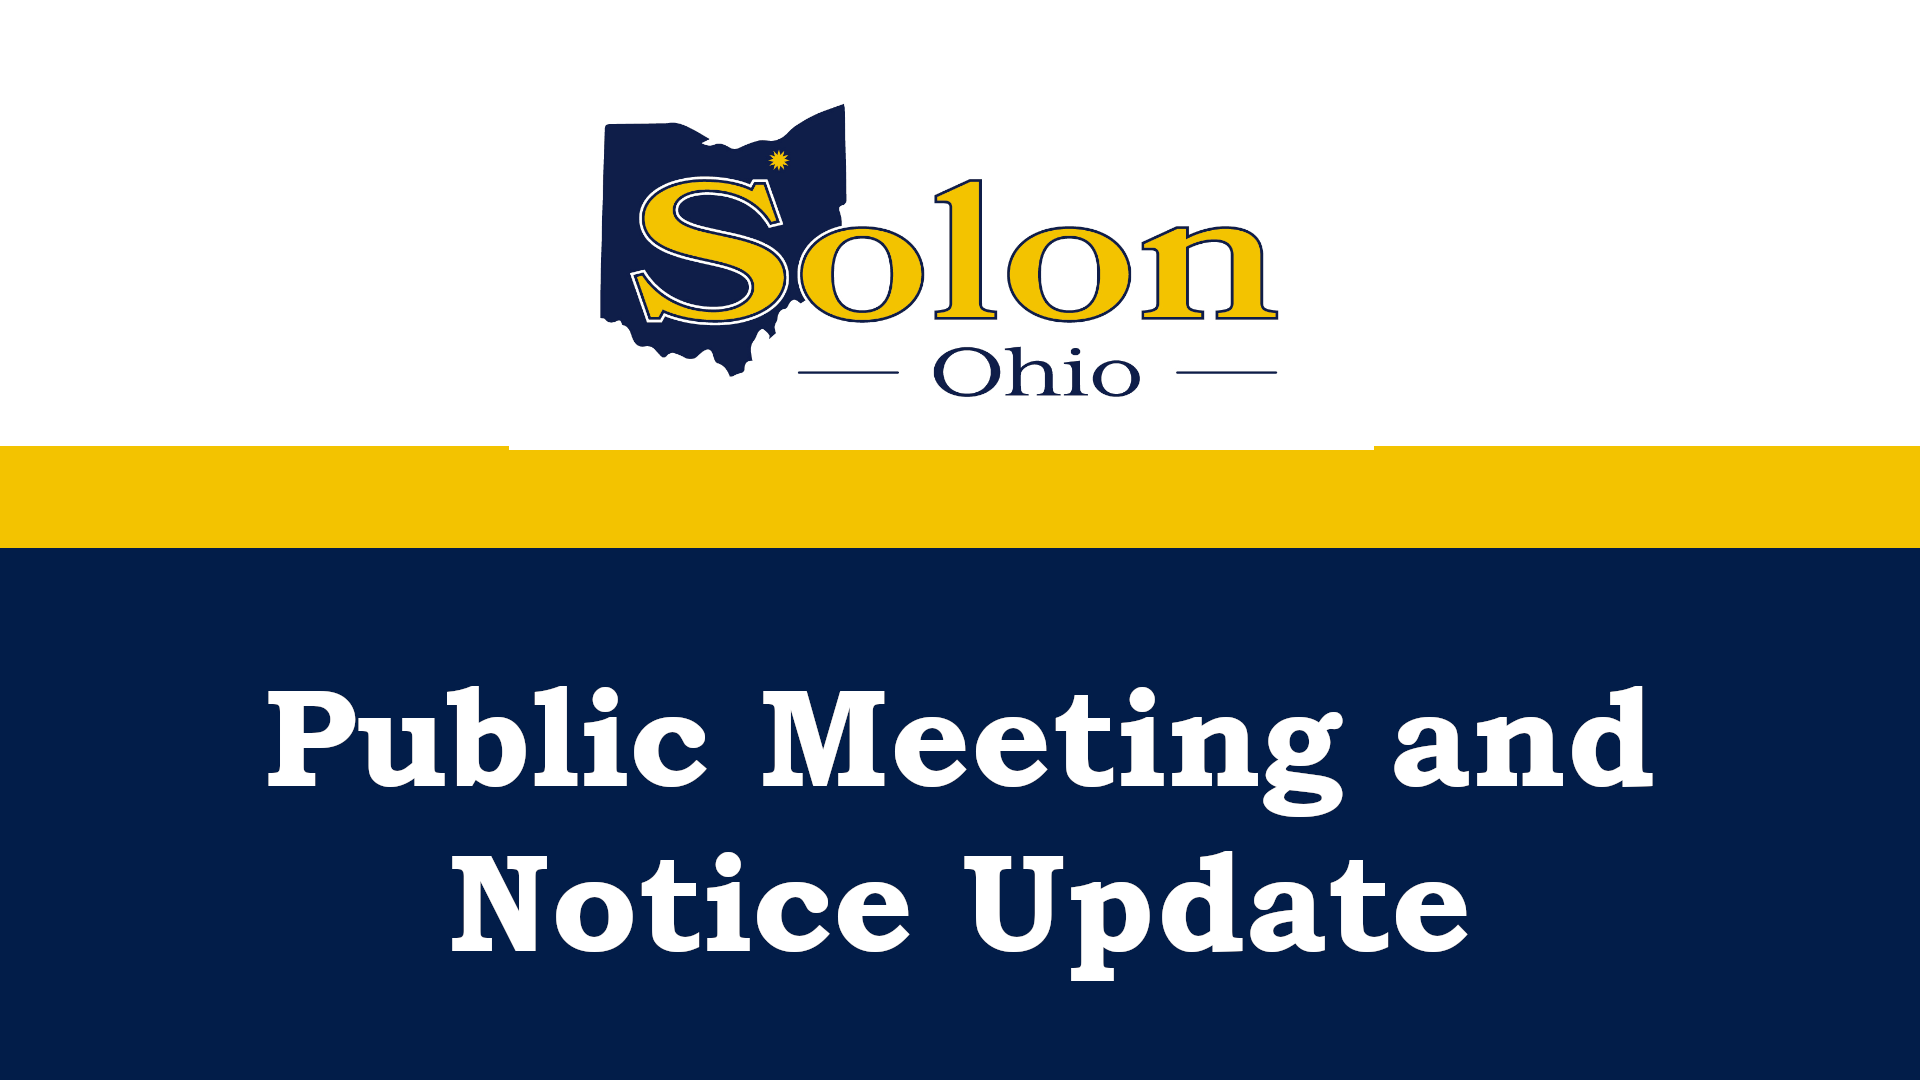 Public Meeting and Notice Update